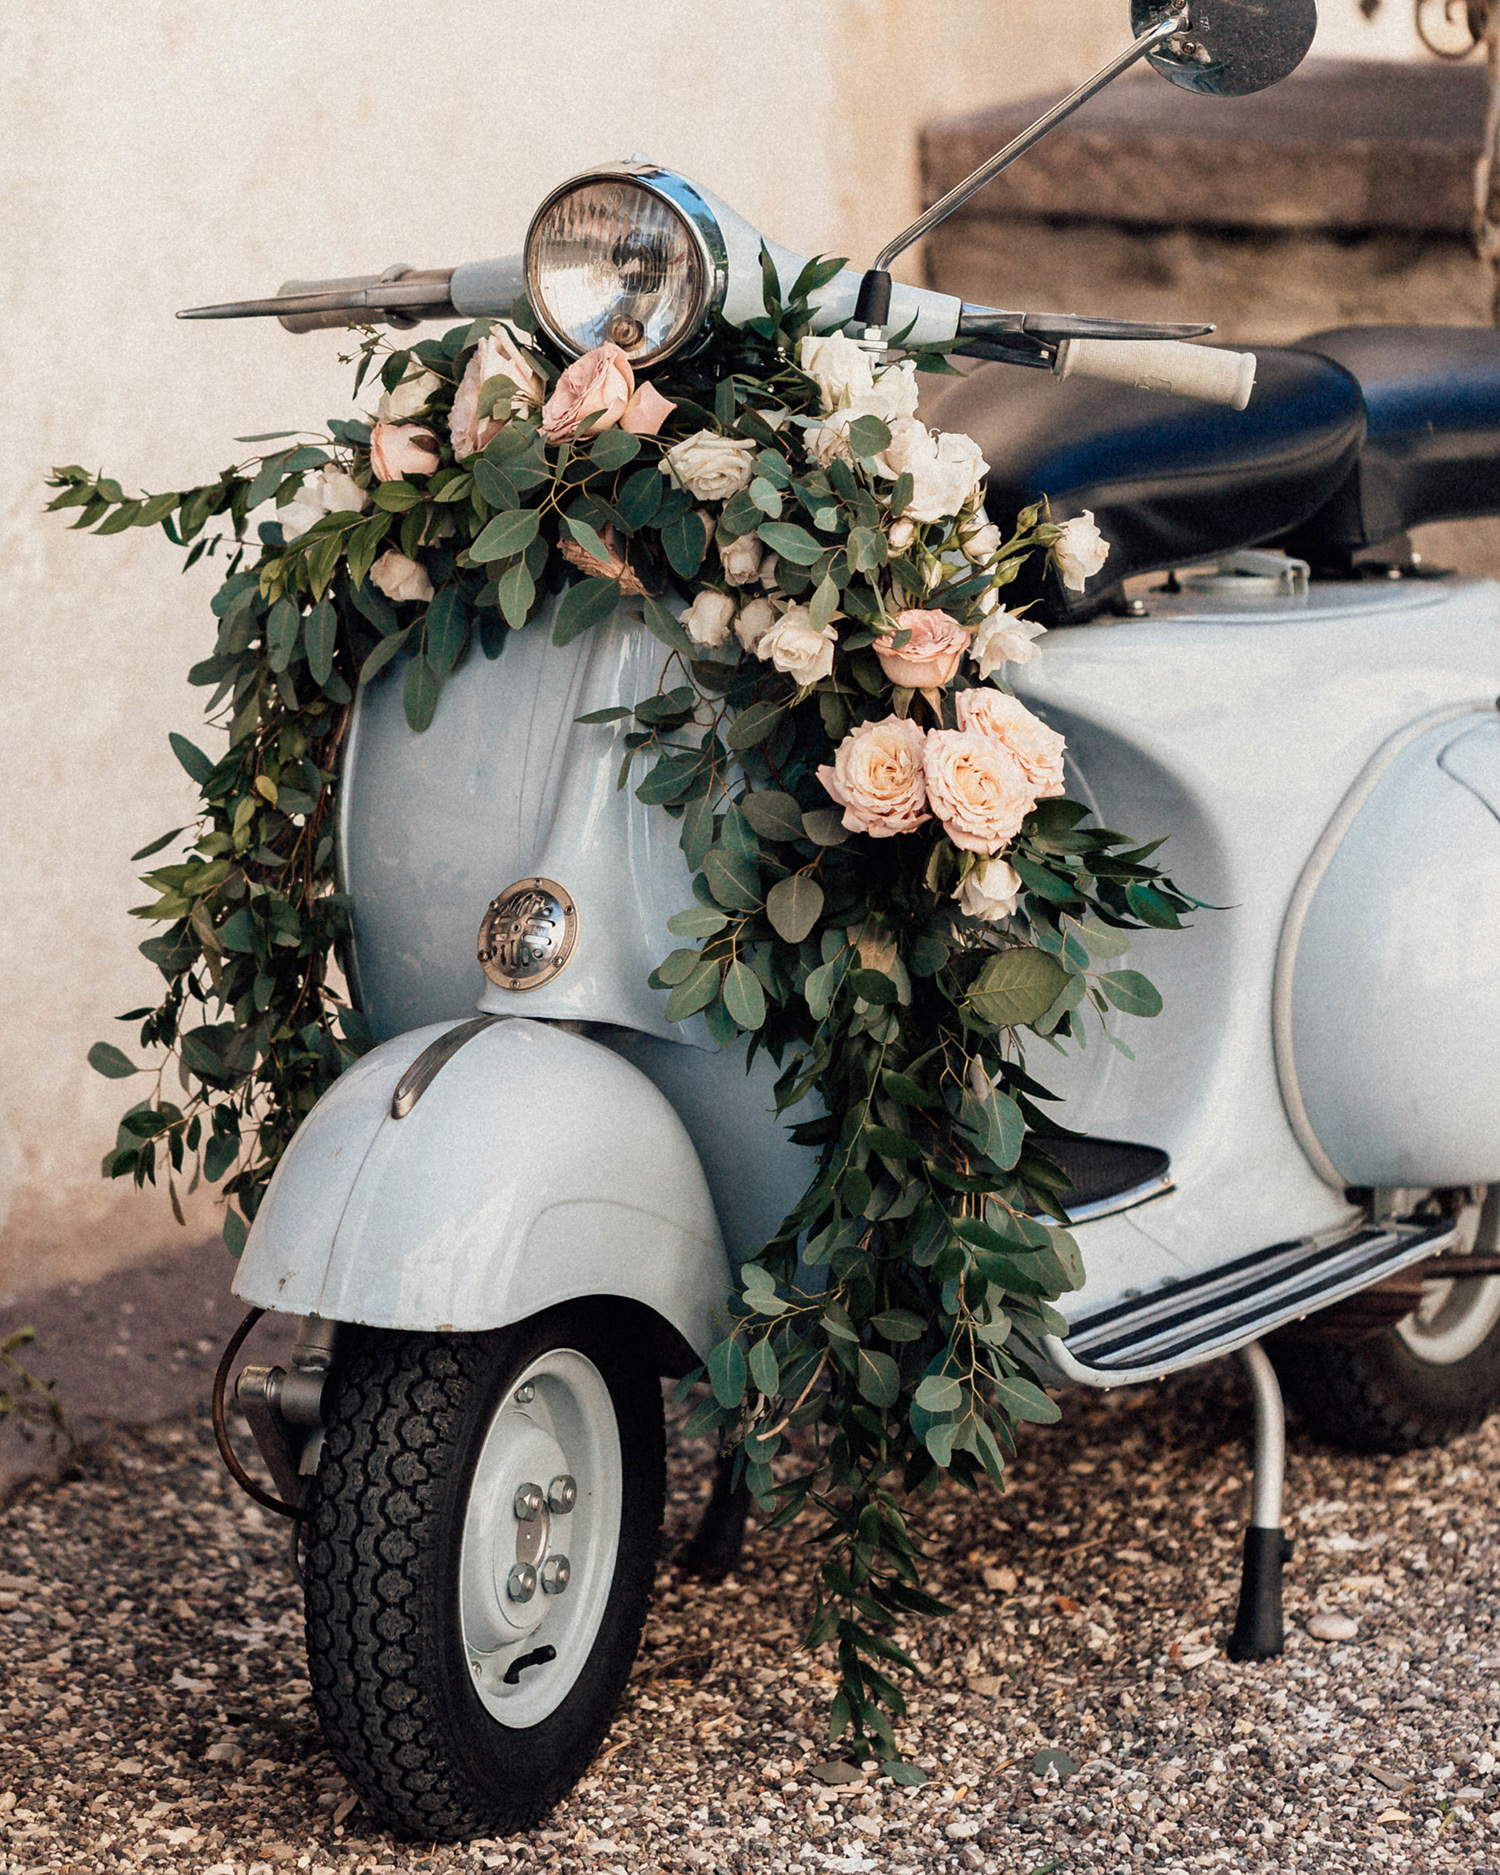 natalie paul wedding ceremony vespa with flowers